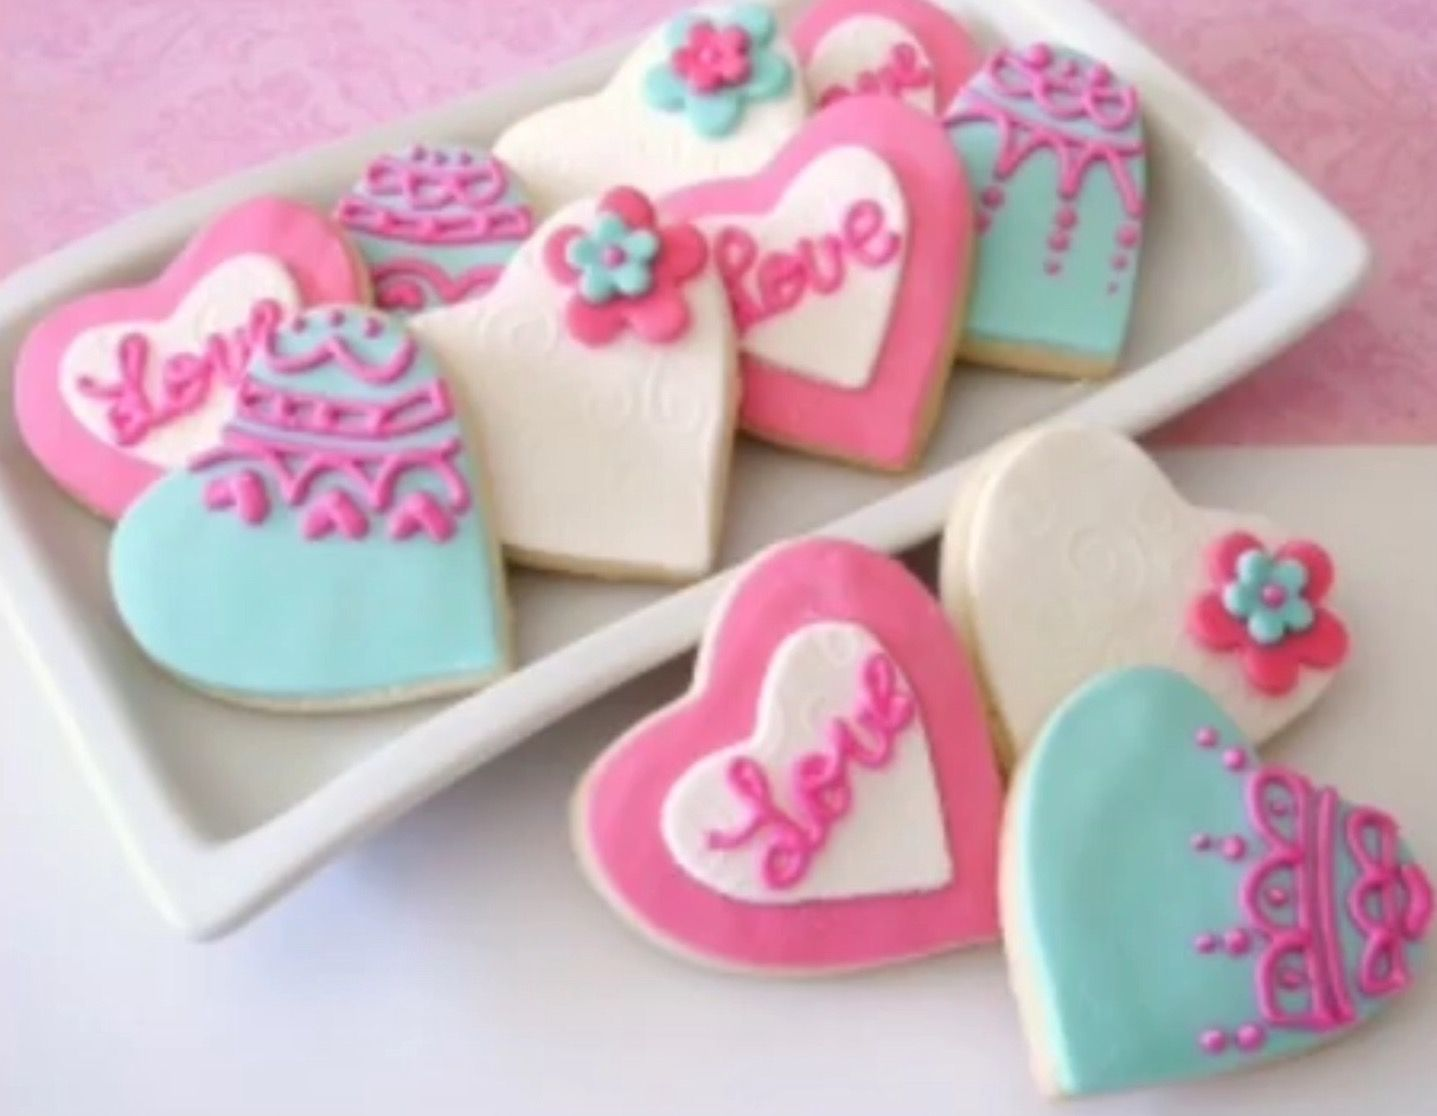 Como Decorar Galletas De Corazon Pin De Blasado Blasado En Galletas CorazÓn Galletas Decoradas